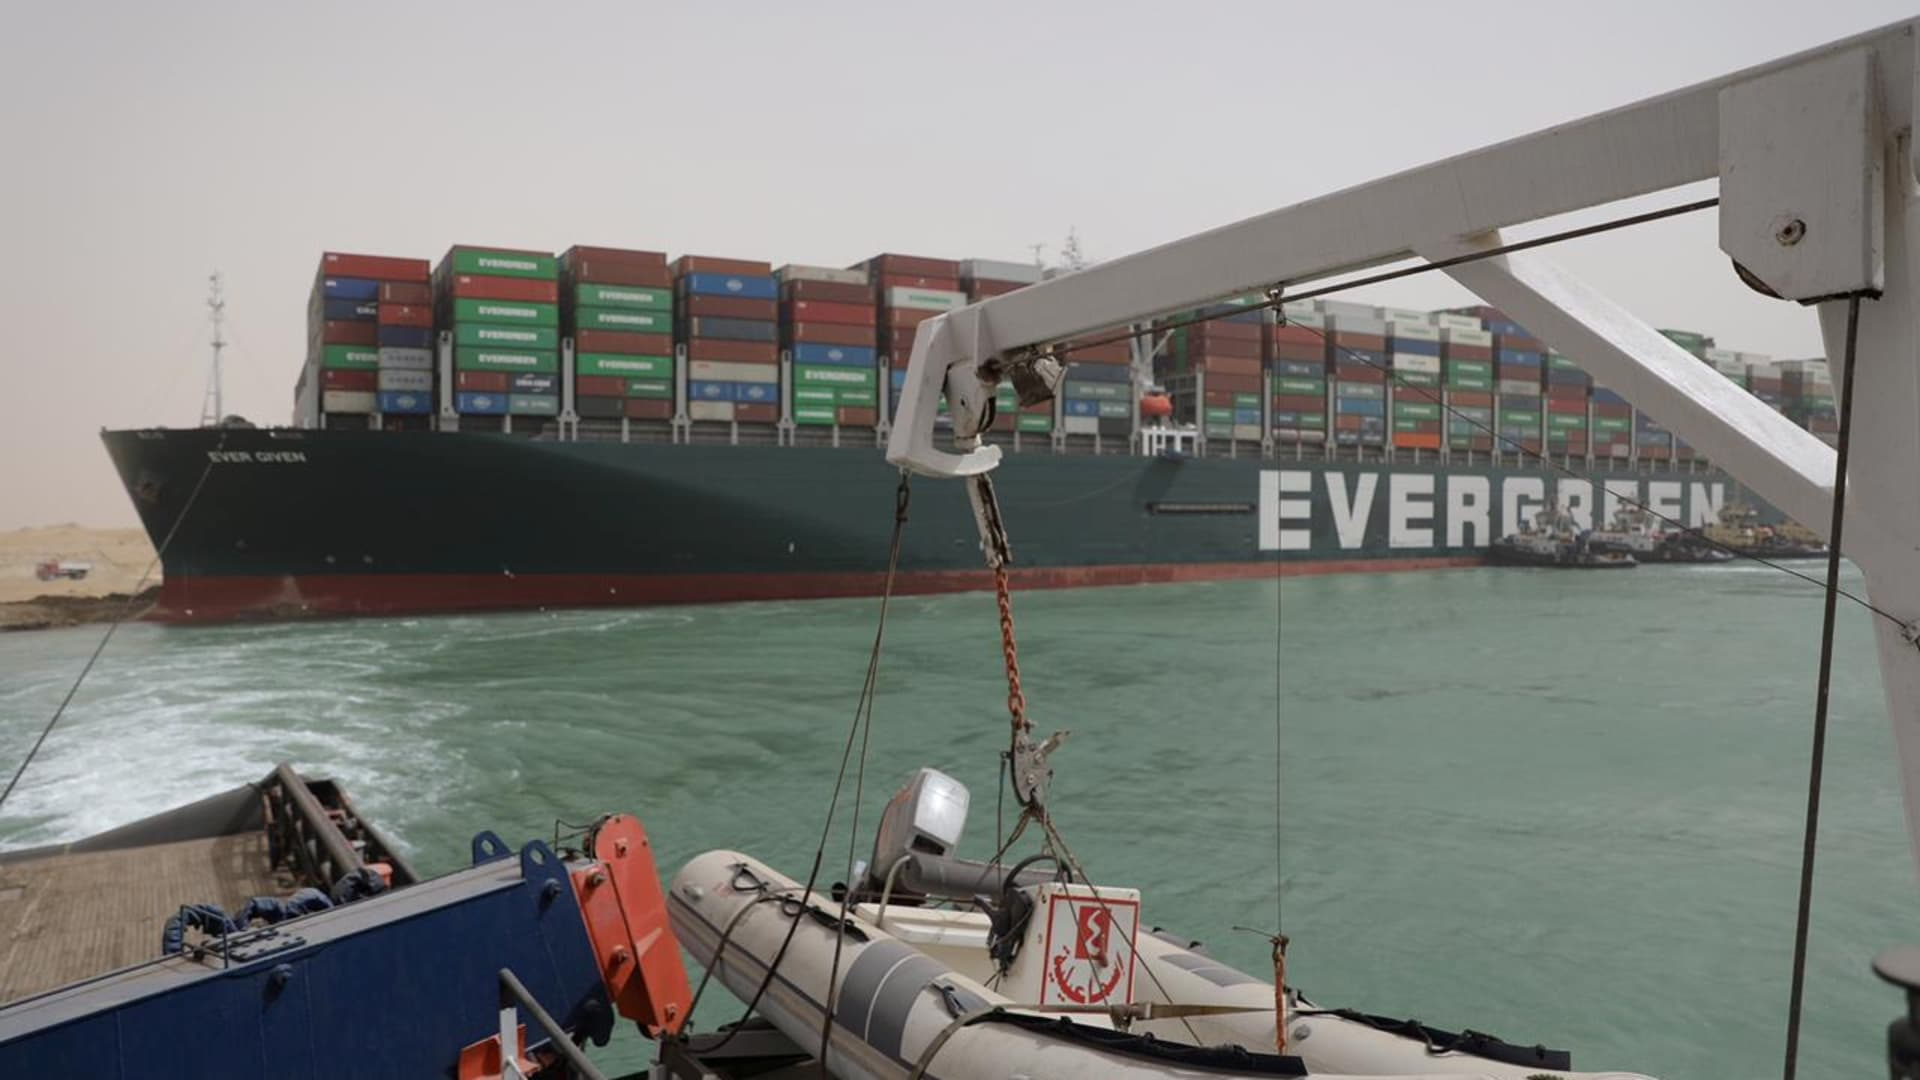 Stranded container ship Ever Given, one of the world's largest container ships, is seen after it ran aground, in Suez Canal, Egypt March 25, 2021.